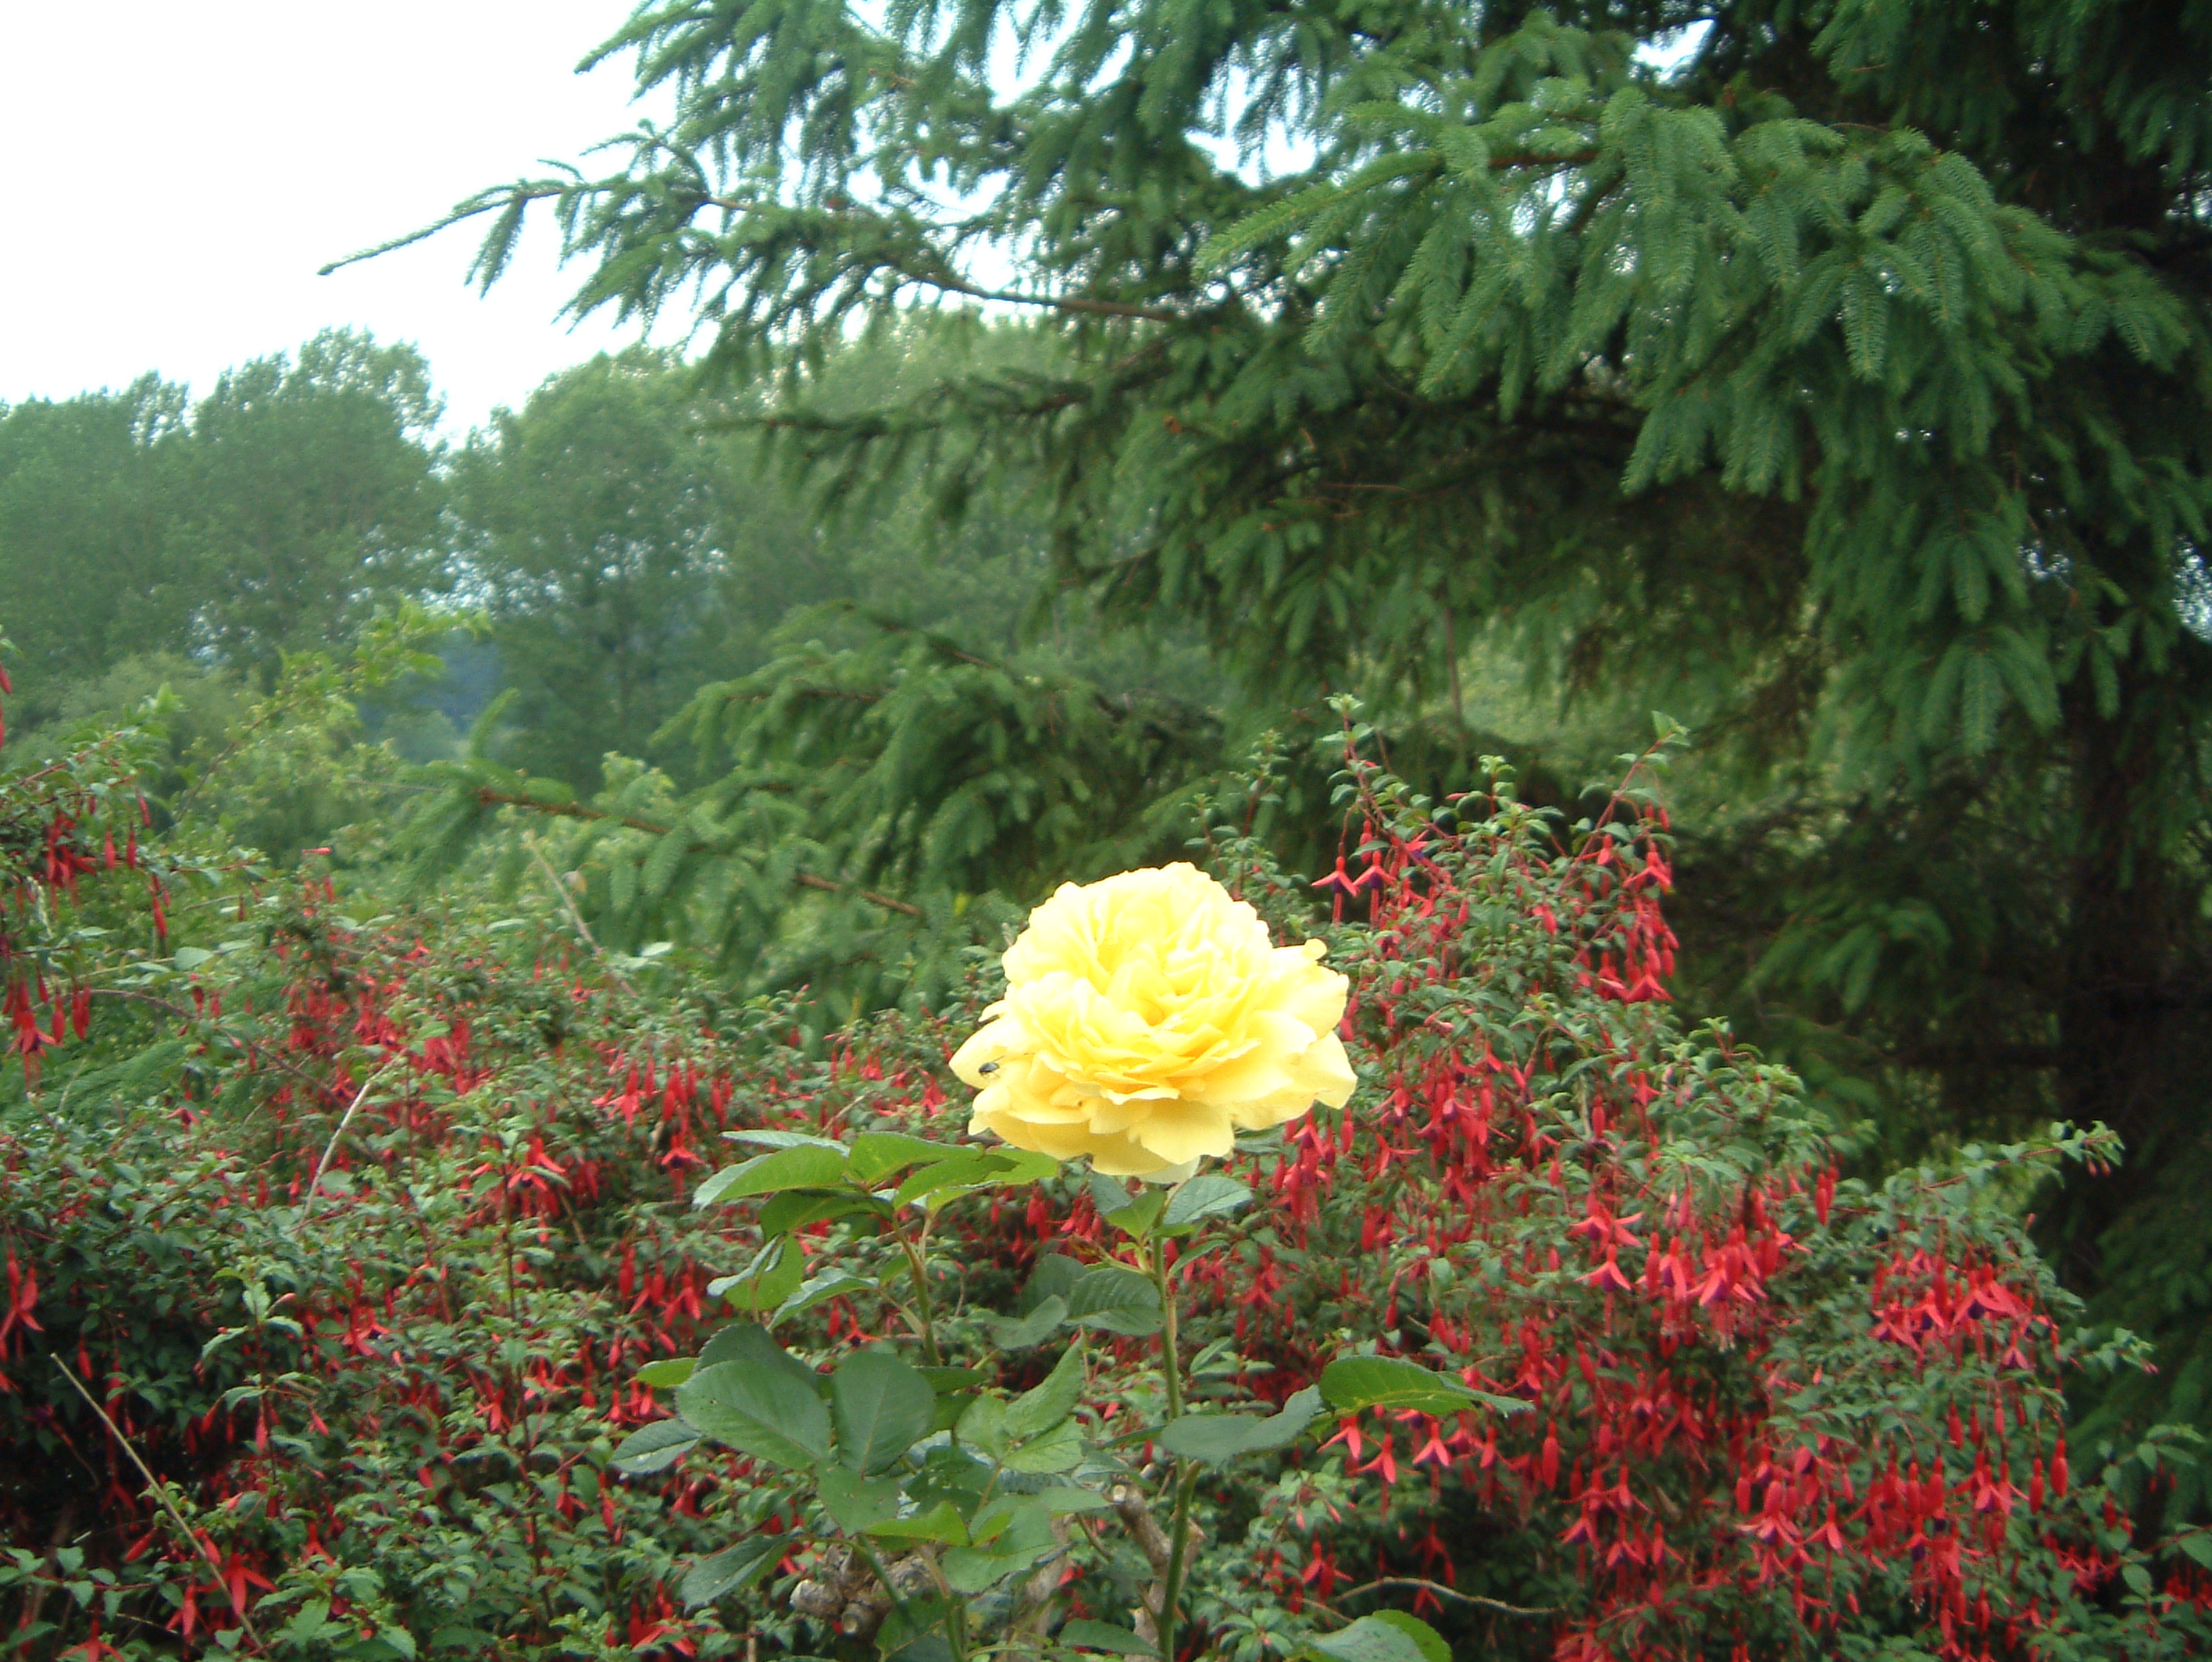 yellowrosefuschia.jpg